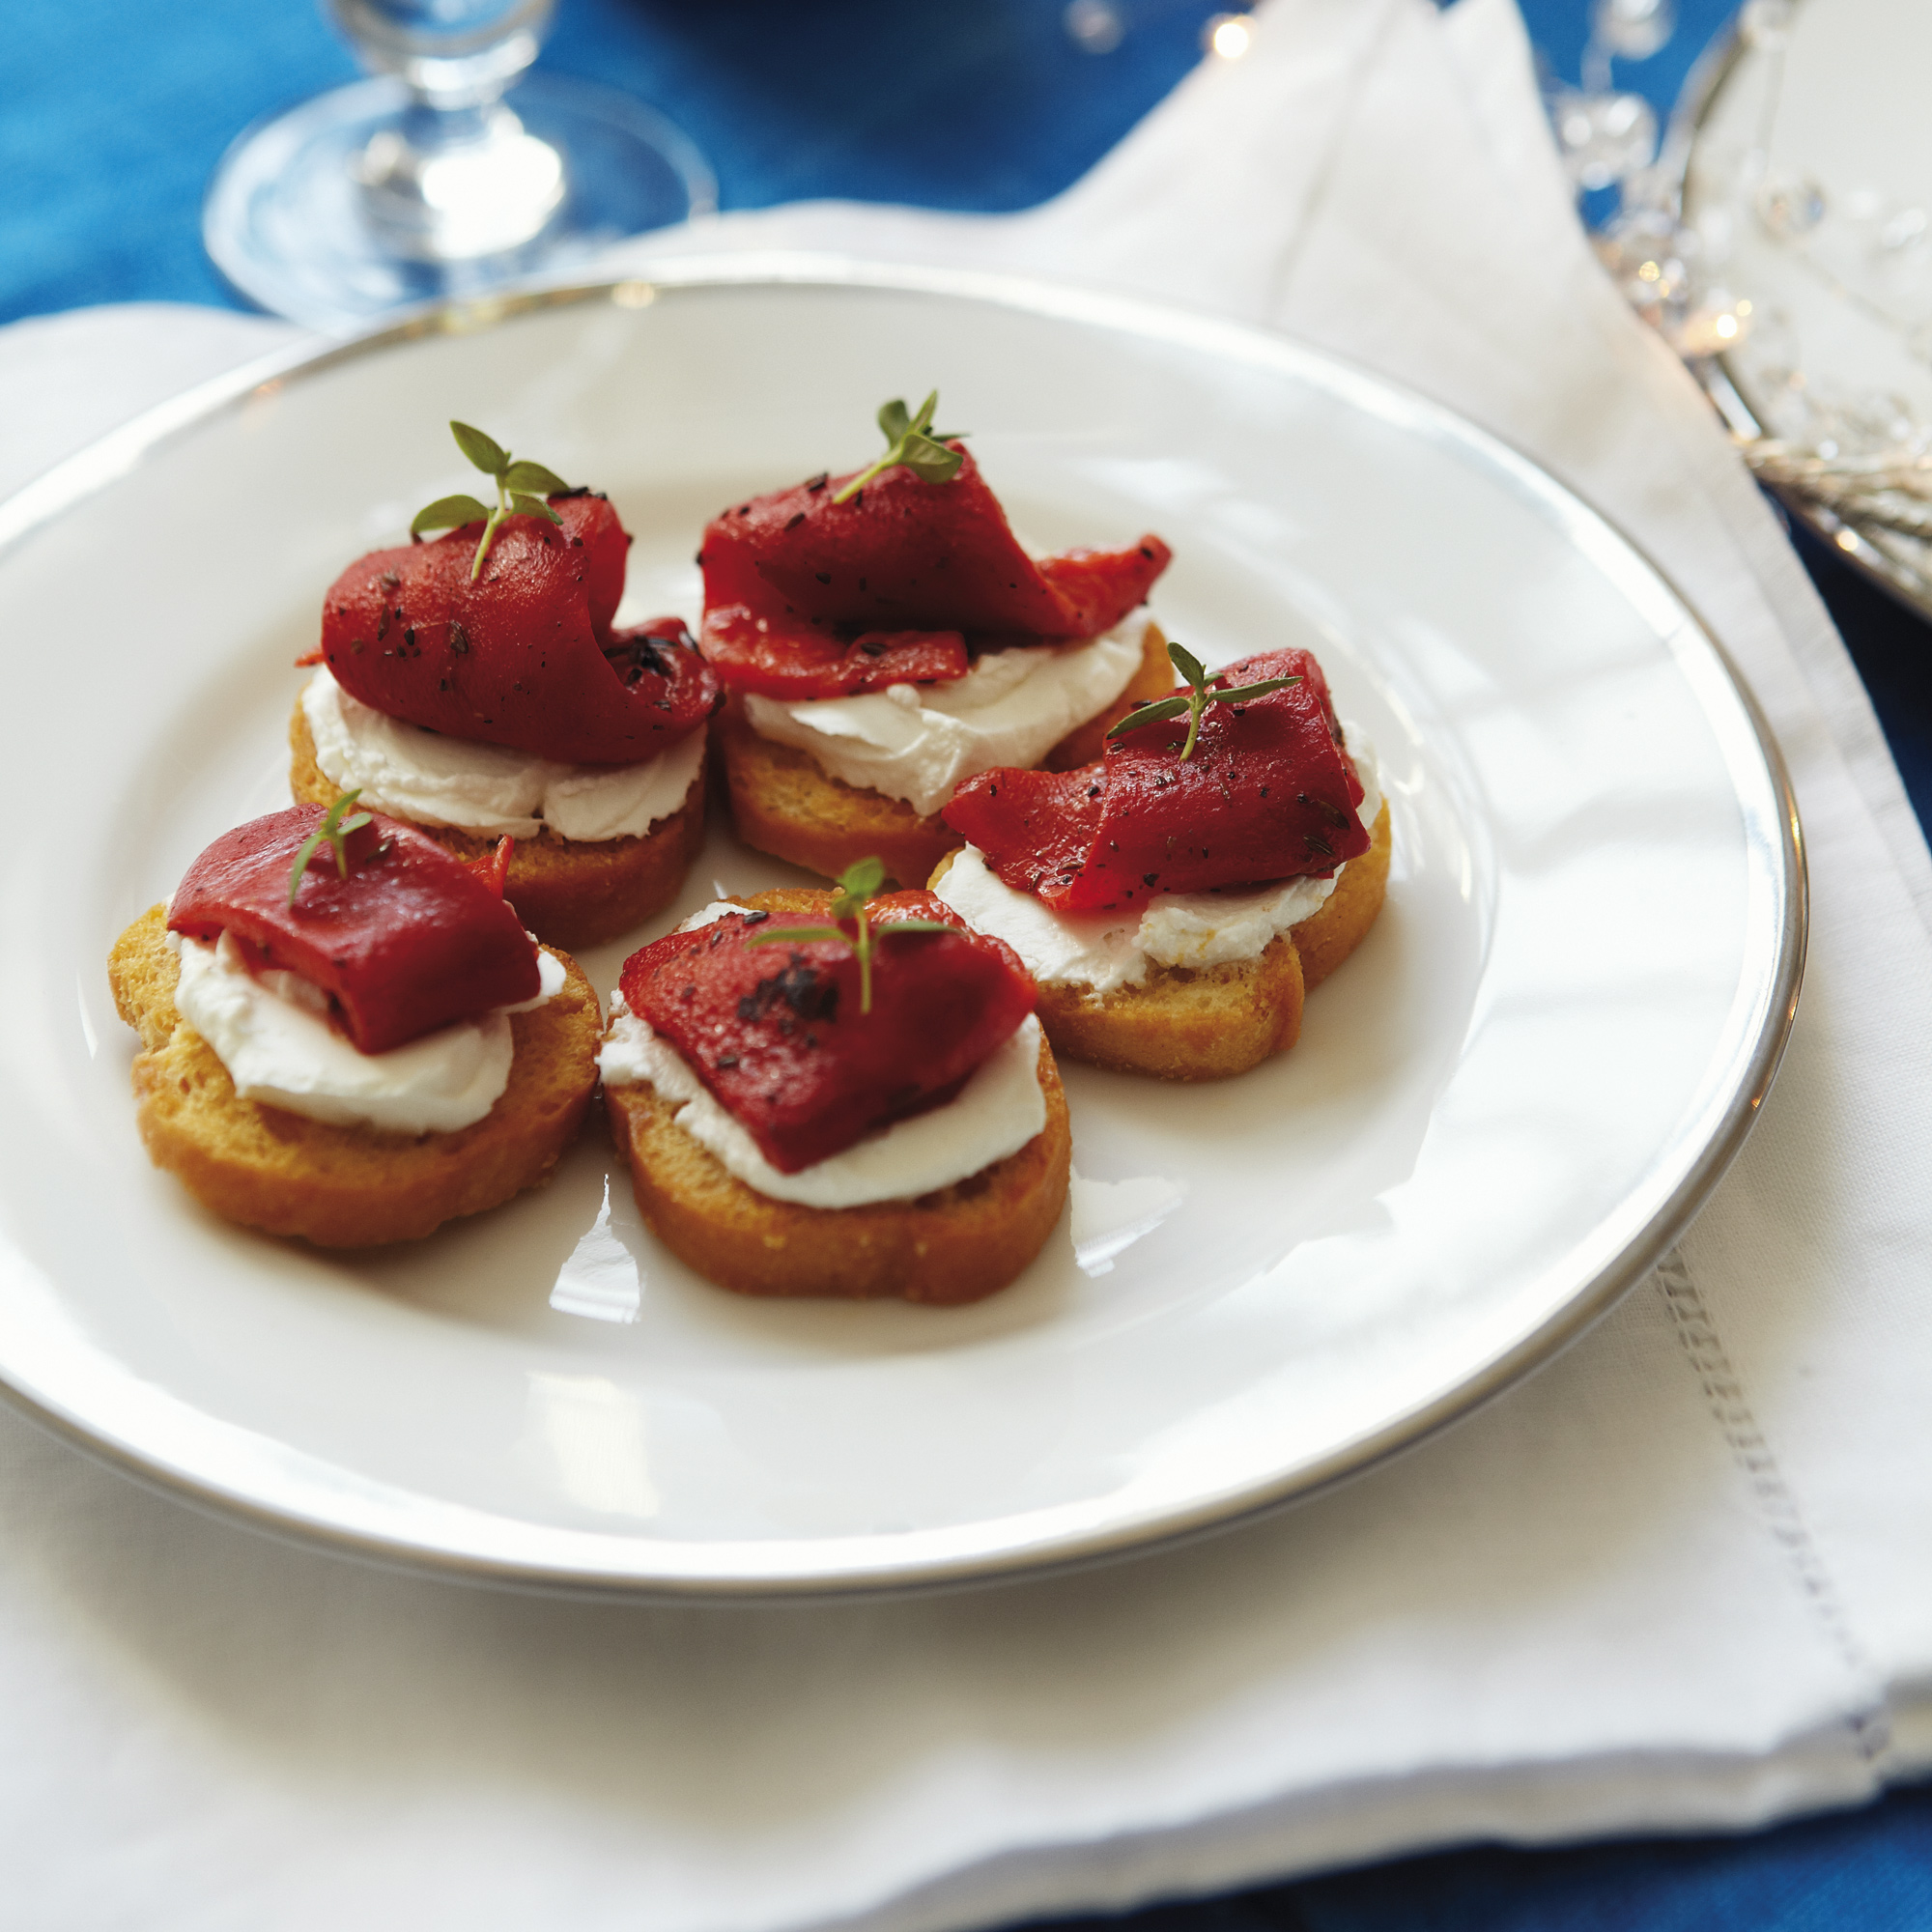 Crostini Of Roasted Red Peppers With Goats' Cheese Recipe